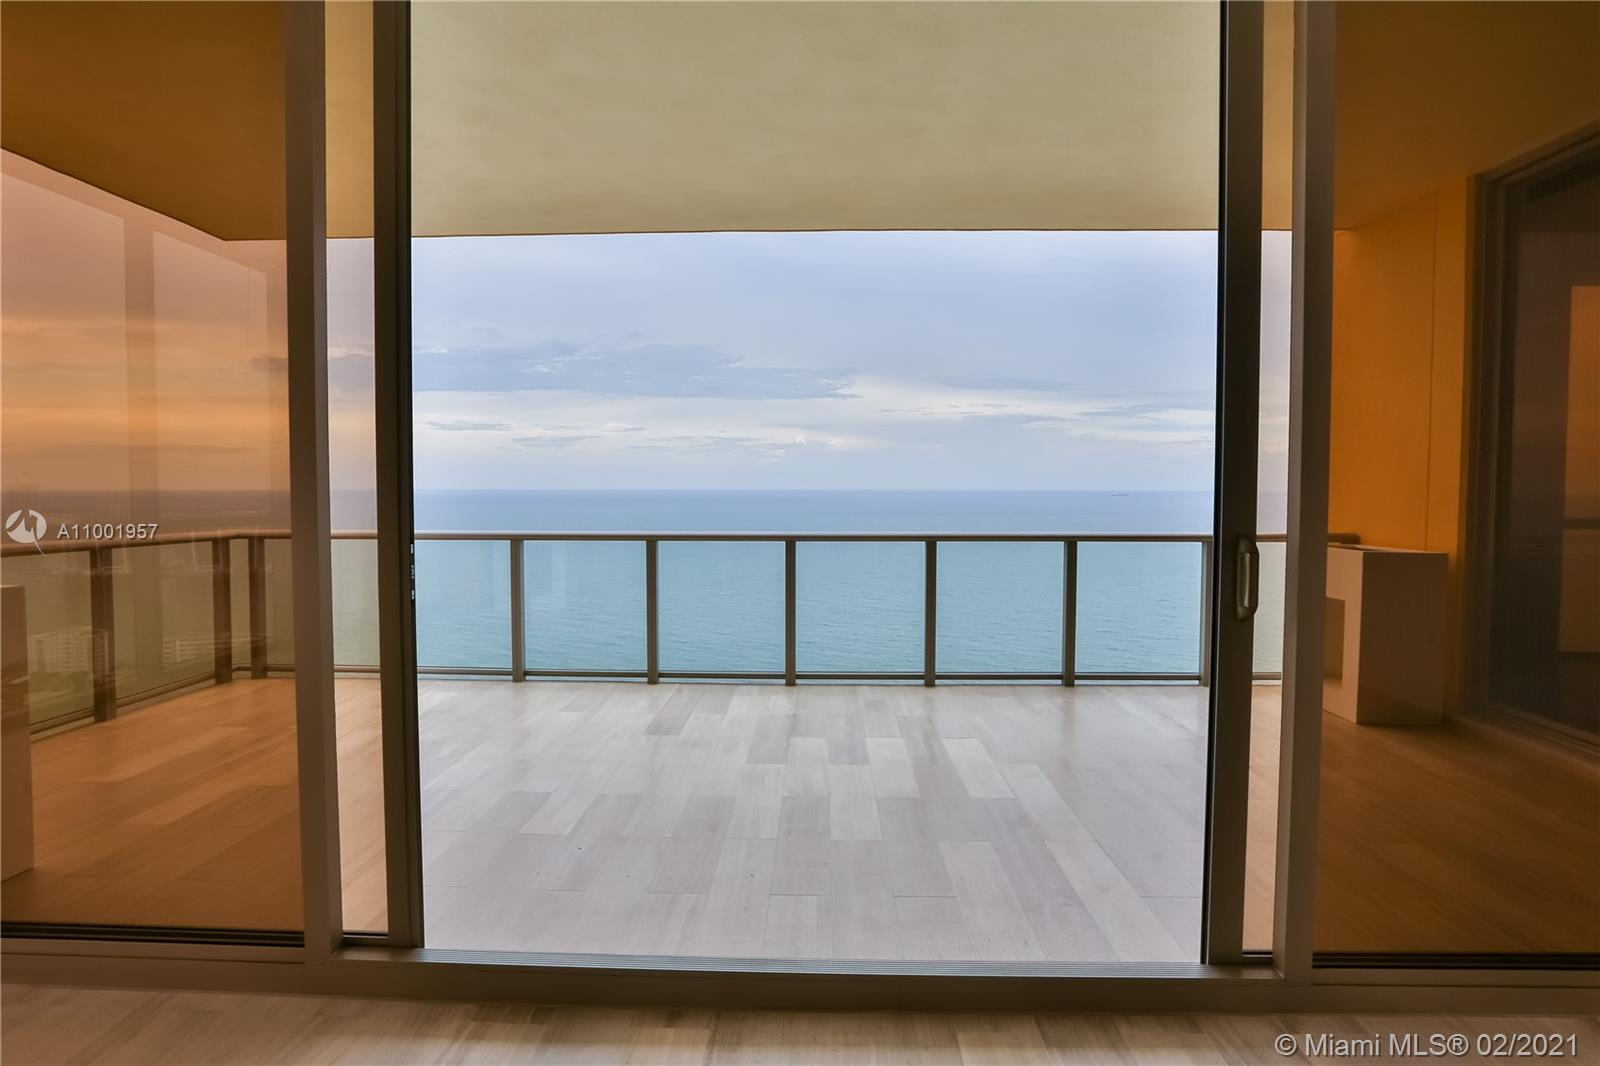 17749 Collins Ave, Unit #3101 Luxury Real Estate